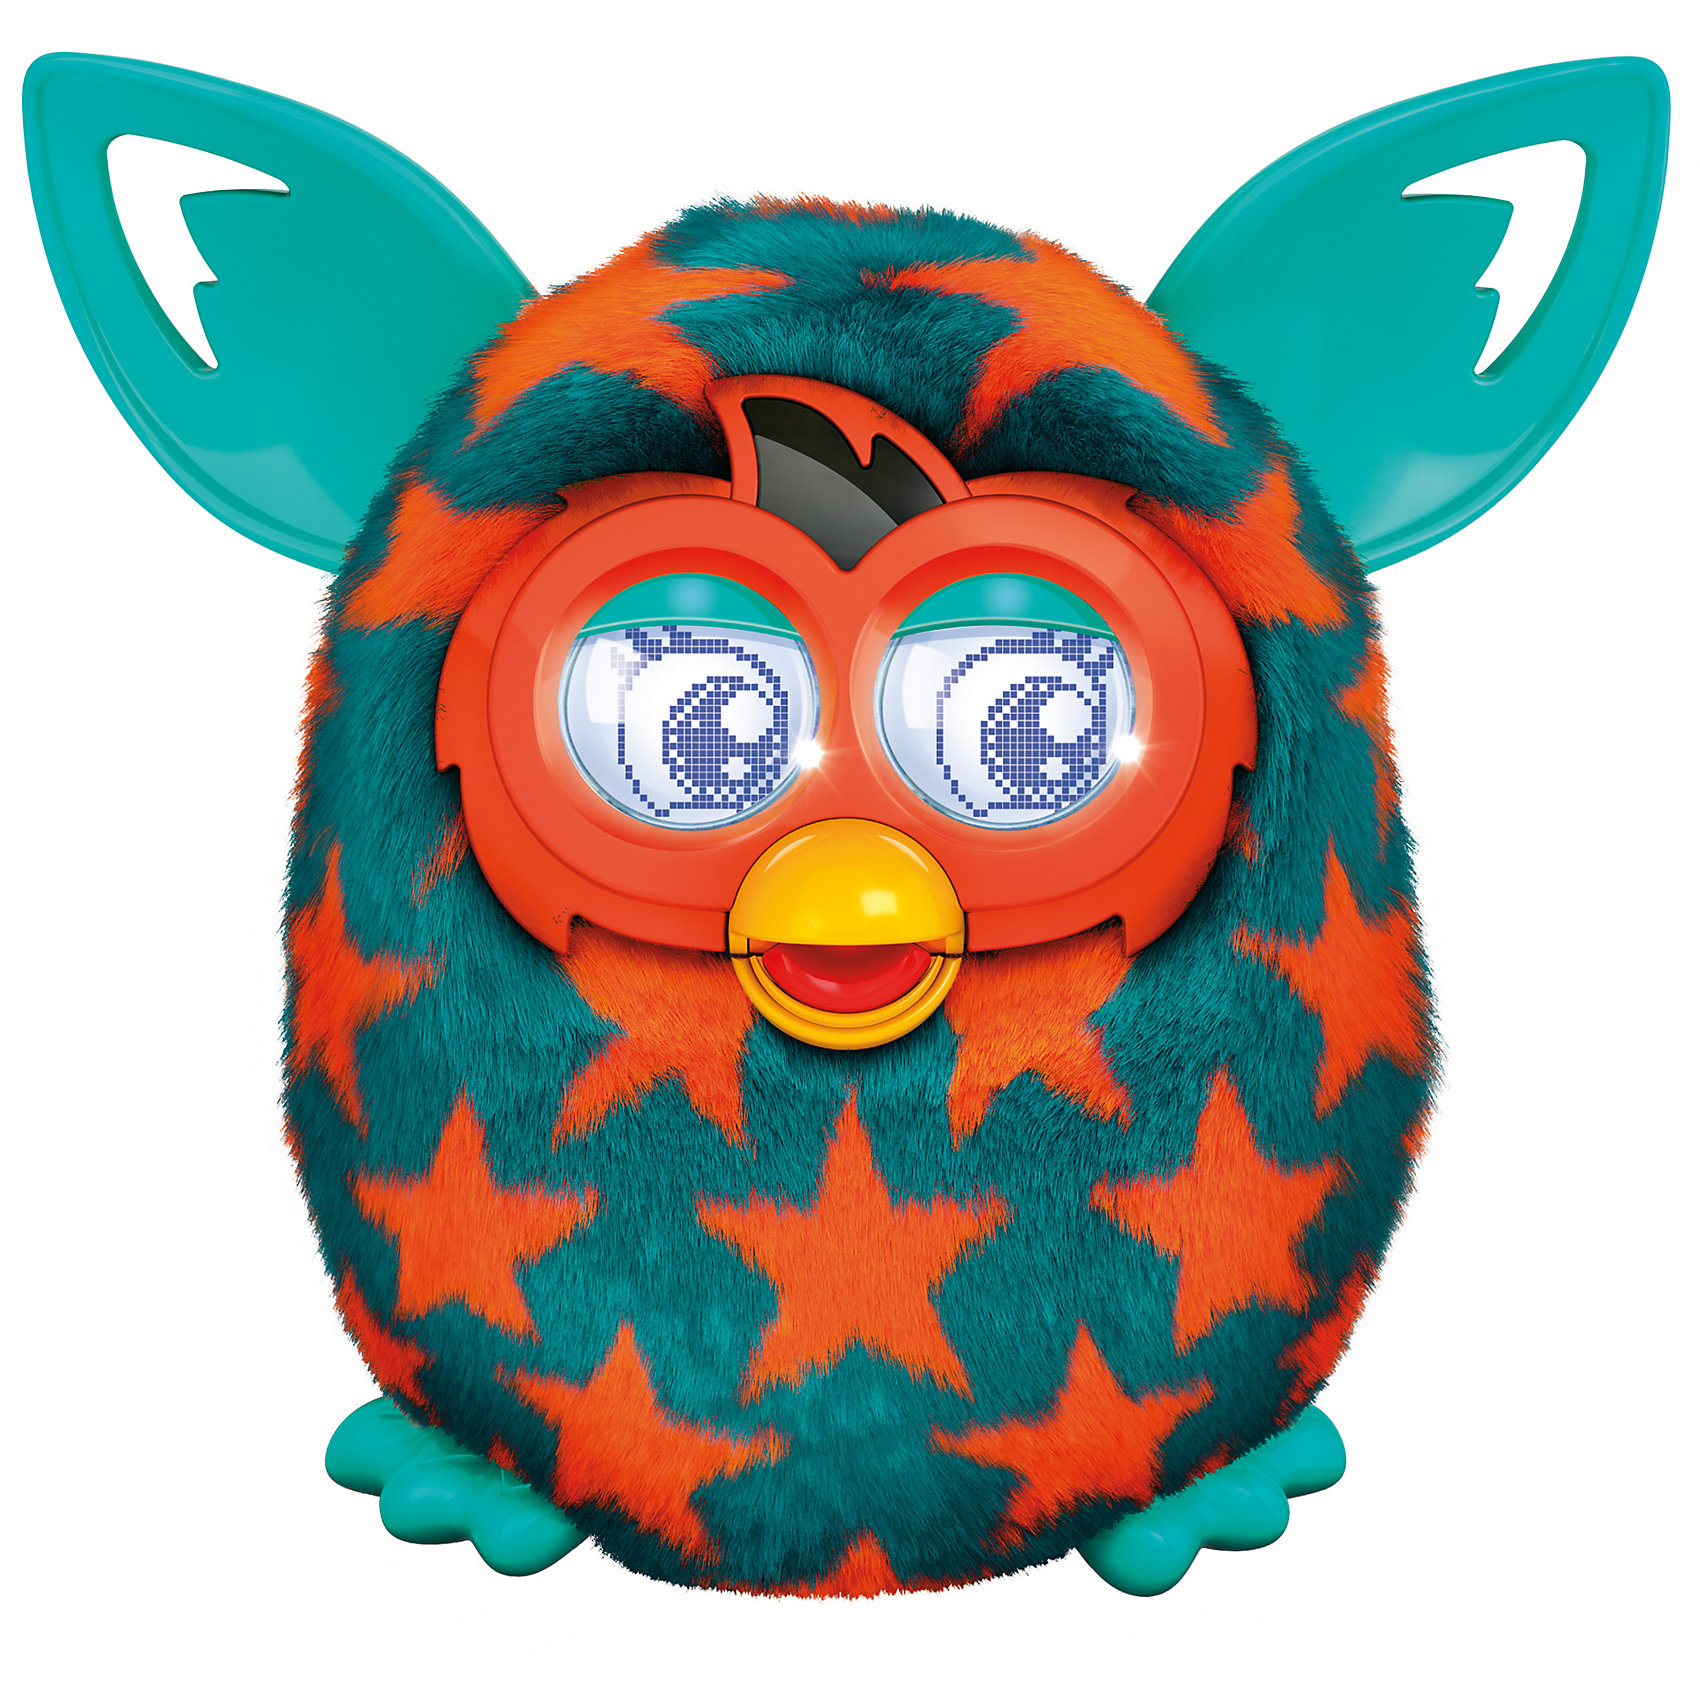 ������������� ������� Furby Boom (����� ���) � ������������������� ����� ��������� �� Furby Boom (����� ���) -  ������������������� ������ ������� ������� �����. ������������� ������� Furby Boom (����� ���) ���������� � �������� � �����. �������� �������� ������ �������� ������ ��� ������ �������. ����� ����� ������� ���� ���, ���������� ����� ����� ������, ���������� ����������� ������� (����������), �������� � ����, ���������, ���� � ���� �����������, ���� ��� �������. ��� �������� ������ ��������� �������������� ����, �������, �� ����� ����������� �� �������������, ��������, ����� ��� ������ ��� �������������� ���� �������. ����� ��� ������������� �� ���� ������ - ������� � �������. <br>�������� ����� � ����� ������� ����������� ����������, ��������� ����� ����  ������.  ������������������� �������� ����, ��������� ����� ��������� ������, ��������� ����� ������� �� ������������ ����� ��� ����� � ������. � �������, ������ Furby Boom ����� ���� �������������� ��������, ��� ��� ������ ���������� �����, ���������� ��������. ������ �������� �� ��������� Furby Boom, ����� ������� � ��������, � ����� ������ � ���������� ����������� Furby Boom. <br><br>�������������� ����������:<br><br>- ��������: �������, ���.<br>- ������: 17 x 16.5 x 12 ��.<br>- ����: ������� � ������� ��������, ���������� ���� � �����. <br>- ������� �������: 4 ��������� �� (�� ������ � ��������).<br>- ���������� � ������� ����������: iPhone/iPad/iPod, Android.<br><br>������������� ������� Furby Boom (����� ���) � ��������� ����� ������ � ����� ��������.<br><br>������ ��: 124<br>������� ��: 200<br>������ ��: 225<br>��� �: 790<br>������� �� �������: 72<br>������� �� �������: 1188<br>���: �������<br>�������: �������